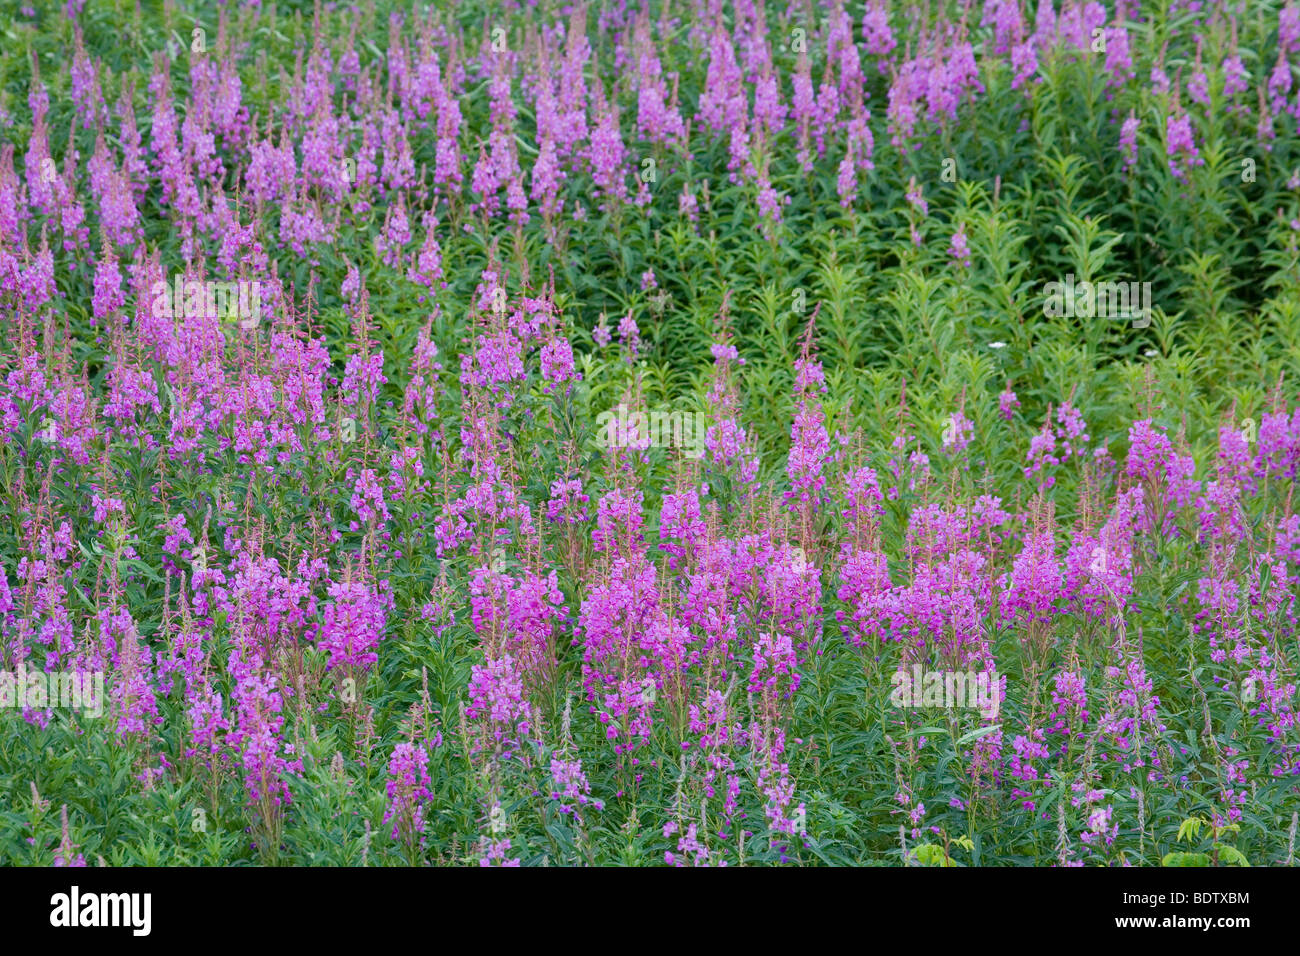 Schmalblaettriges Weidenroeschen / Fireweed - (Blooming Sally) / Chamerion angustifolium - (Epilobium angustifolium) Stock Photo